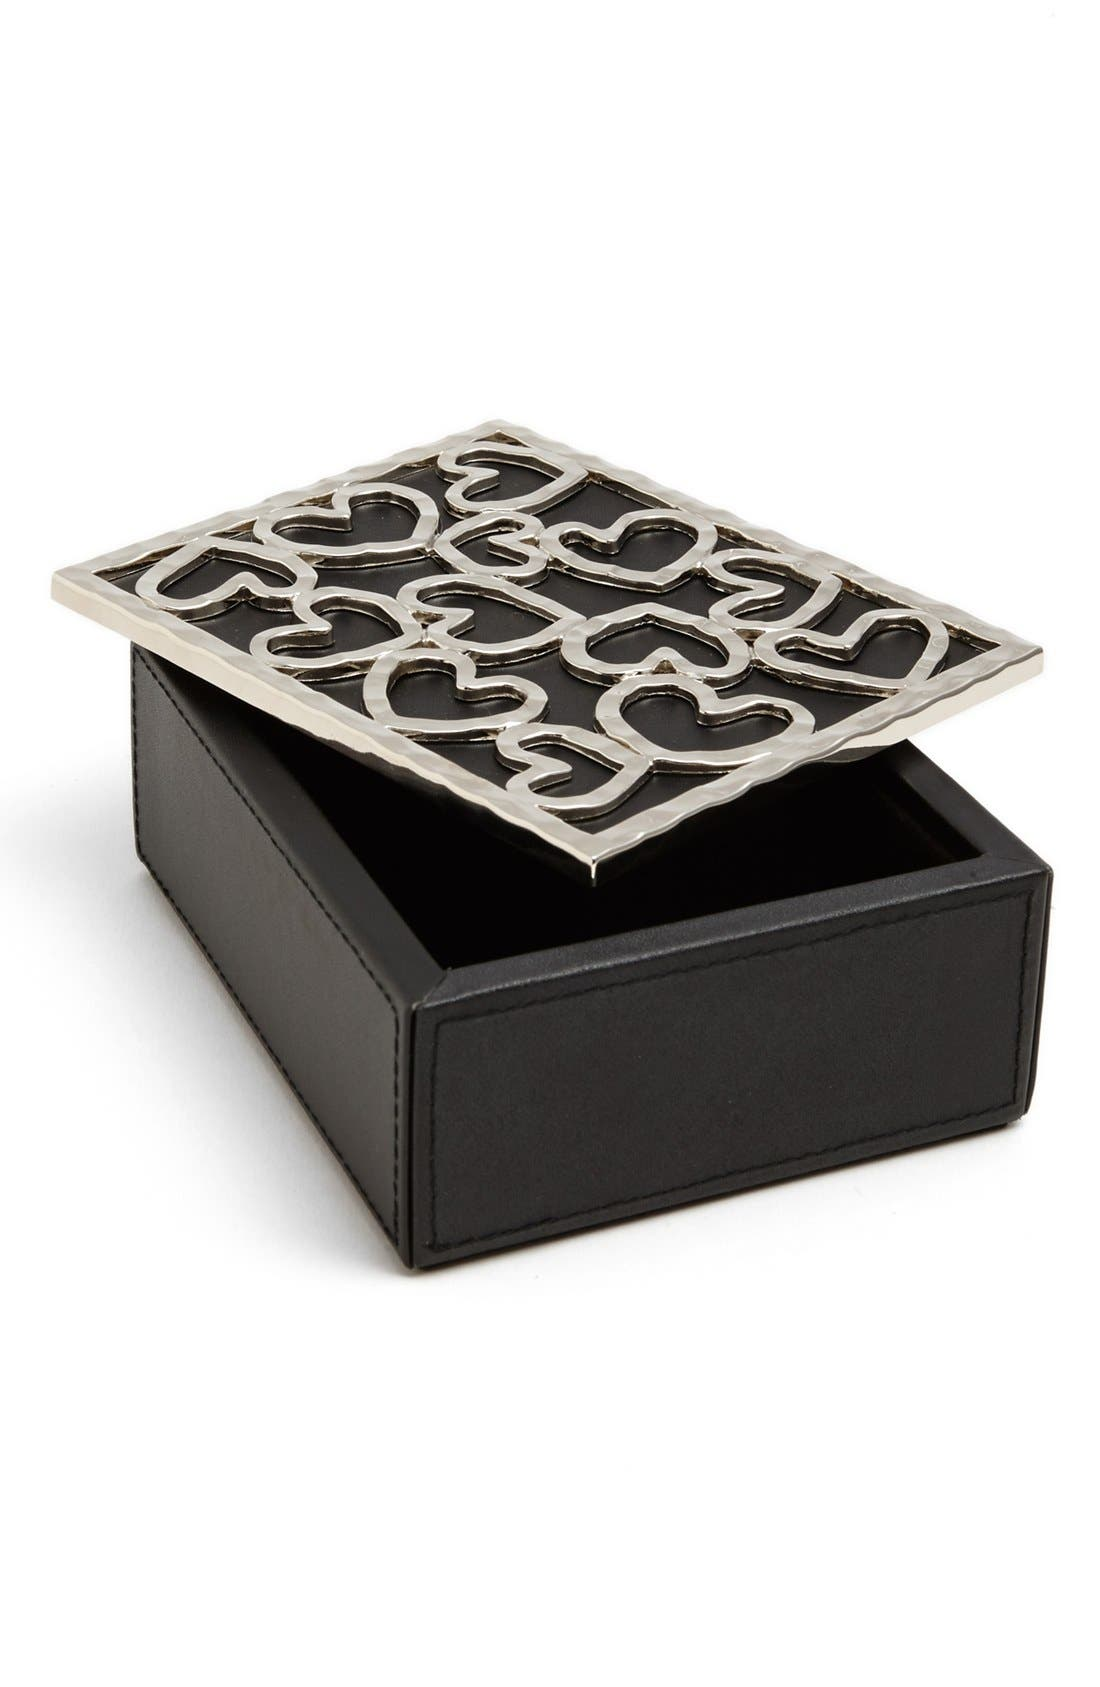 Main Image - Michael Aram 'Heart' Jewelry Box